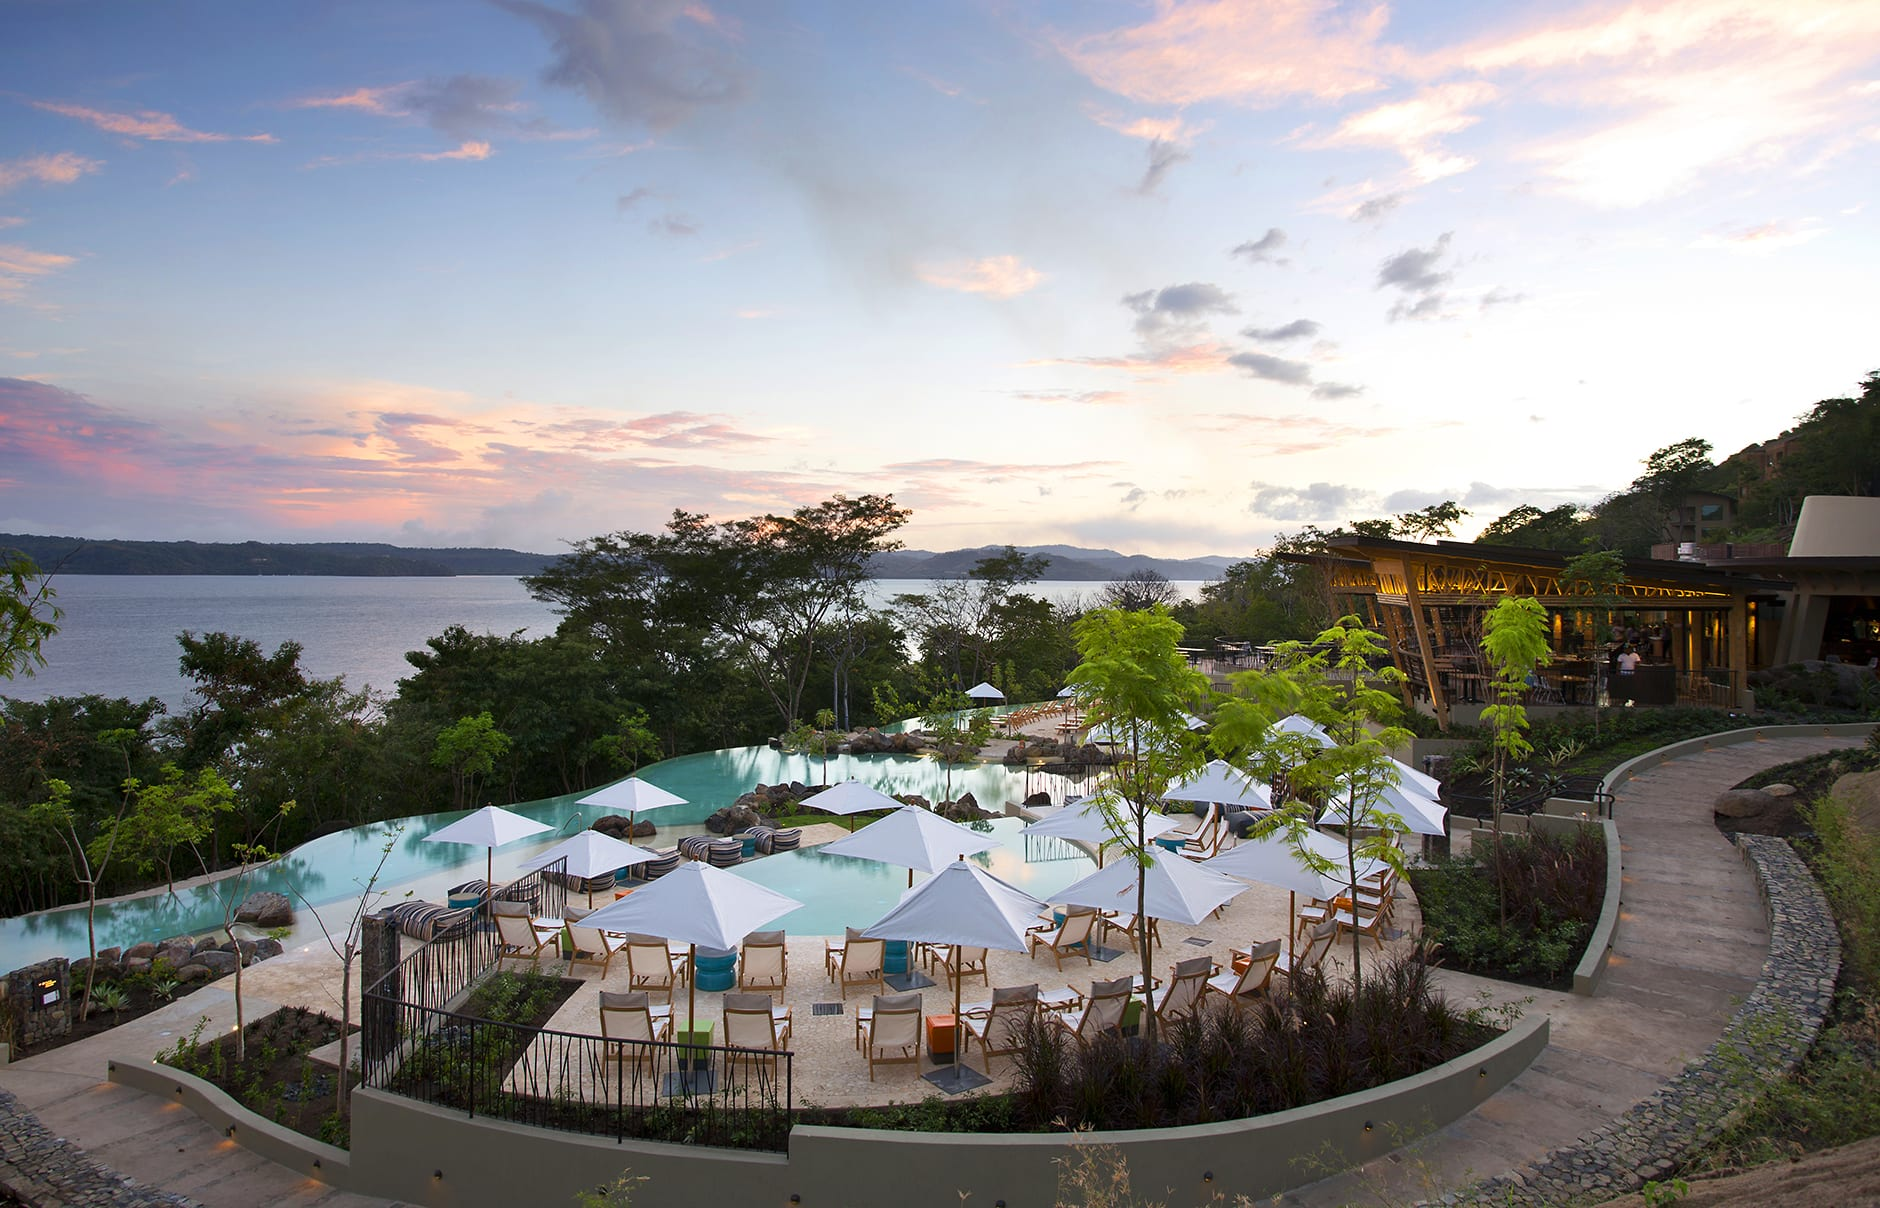 Andaz Peninsula Papagayo Resort, Costa Rica. © Hyatt Corporation